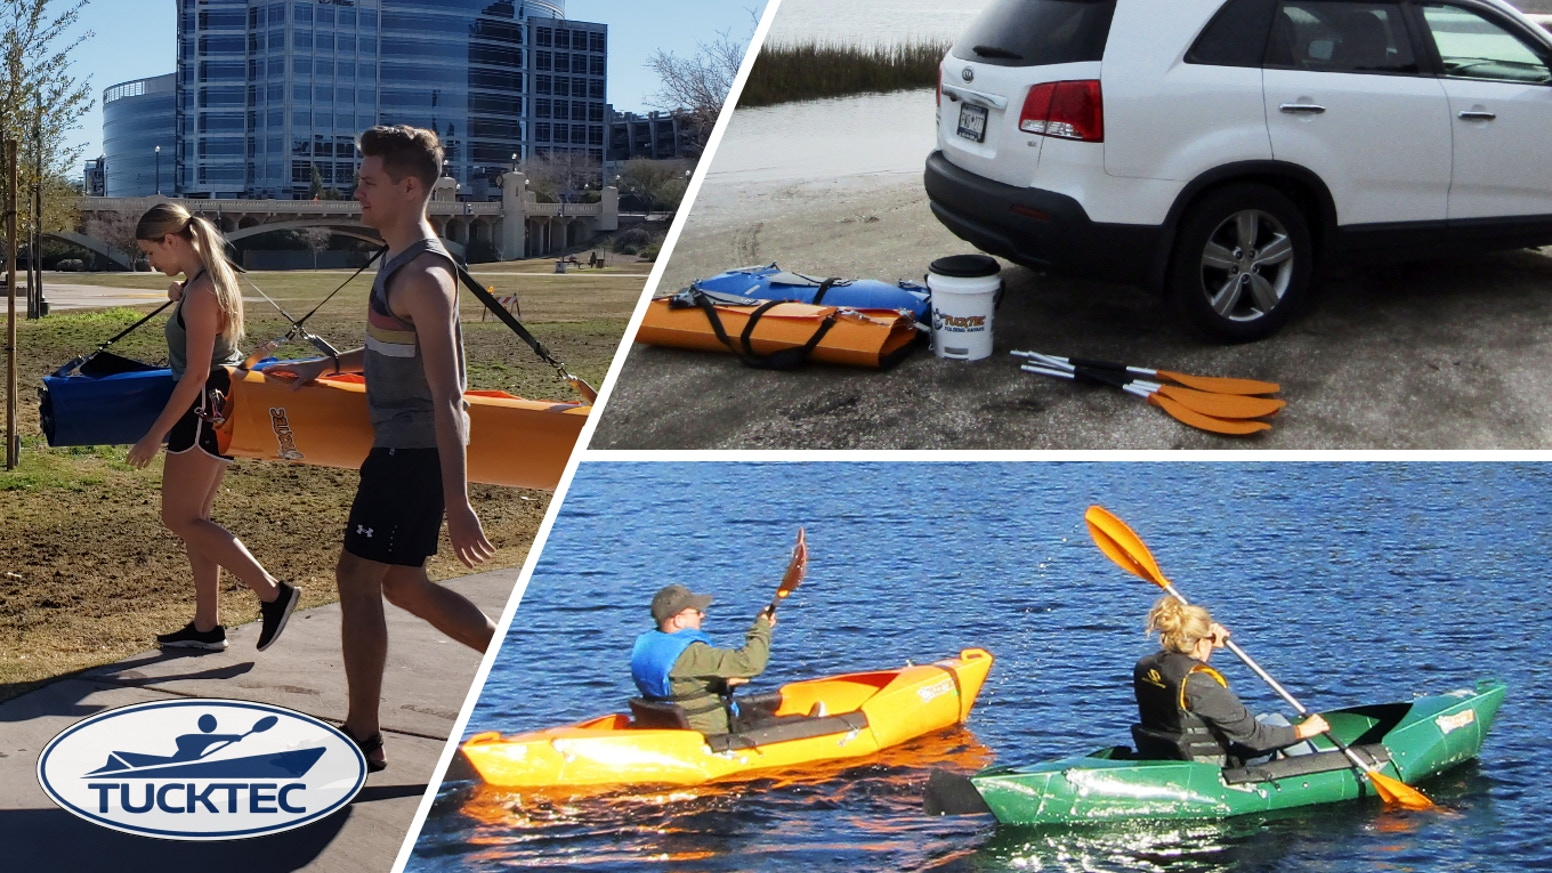 A lightweight, foldable, hardshell Kayak made from recycled plastic. Save space without sacrificing durability or performance.